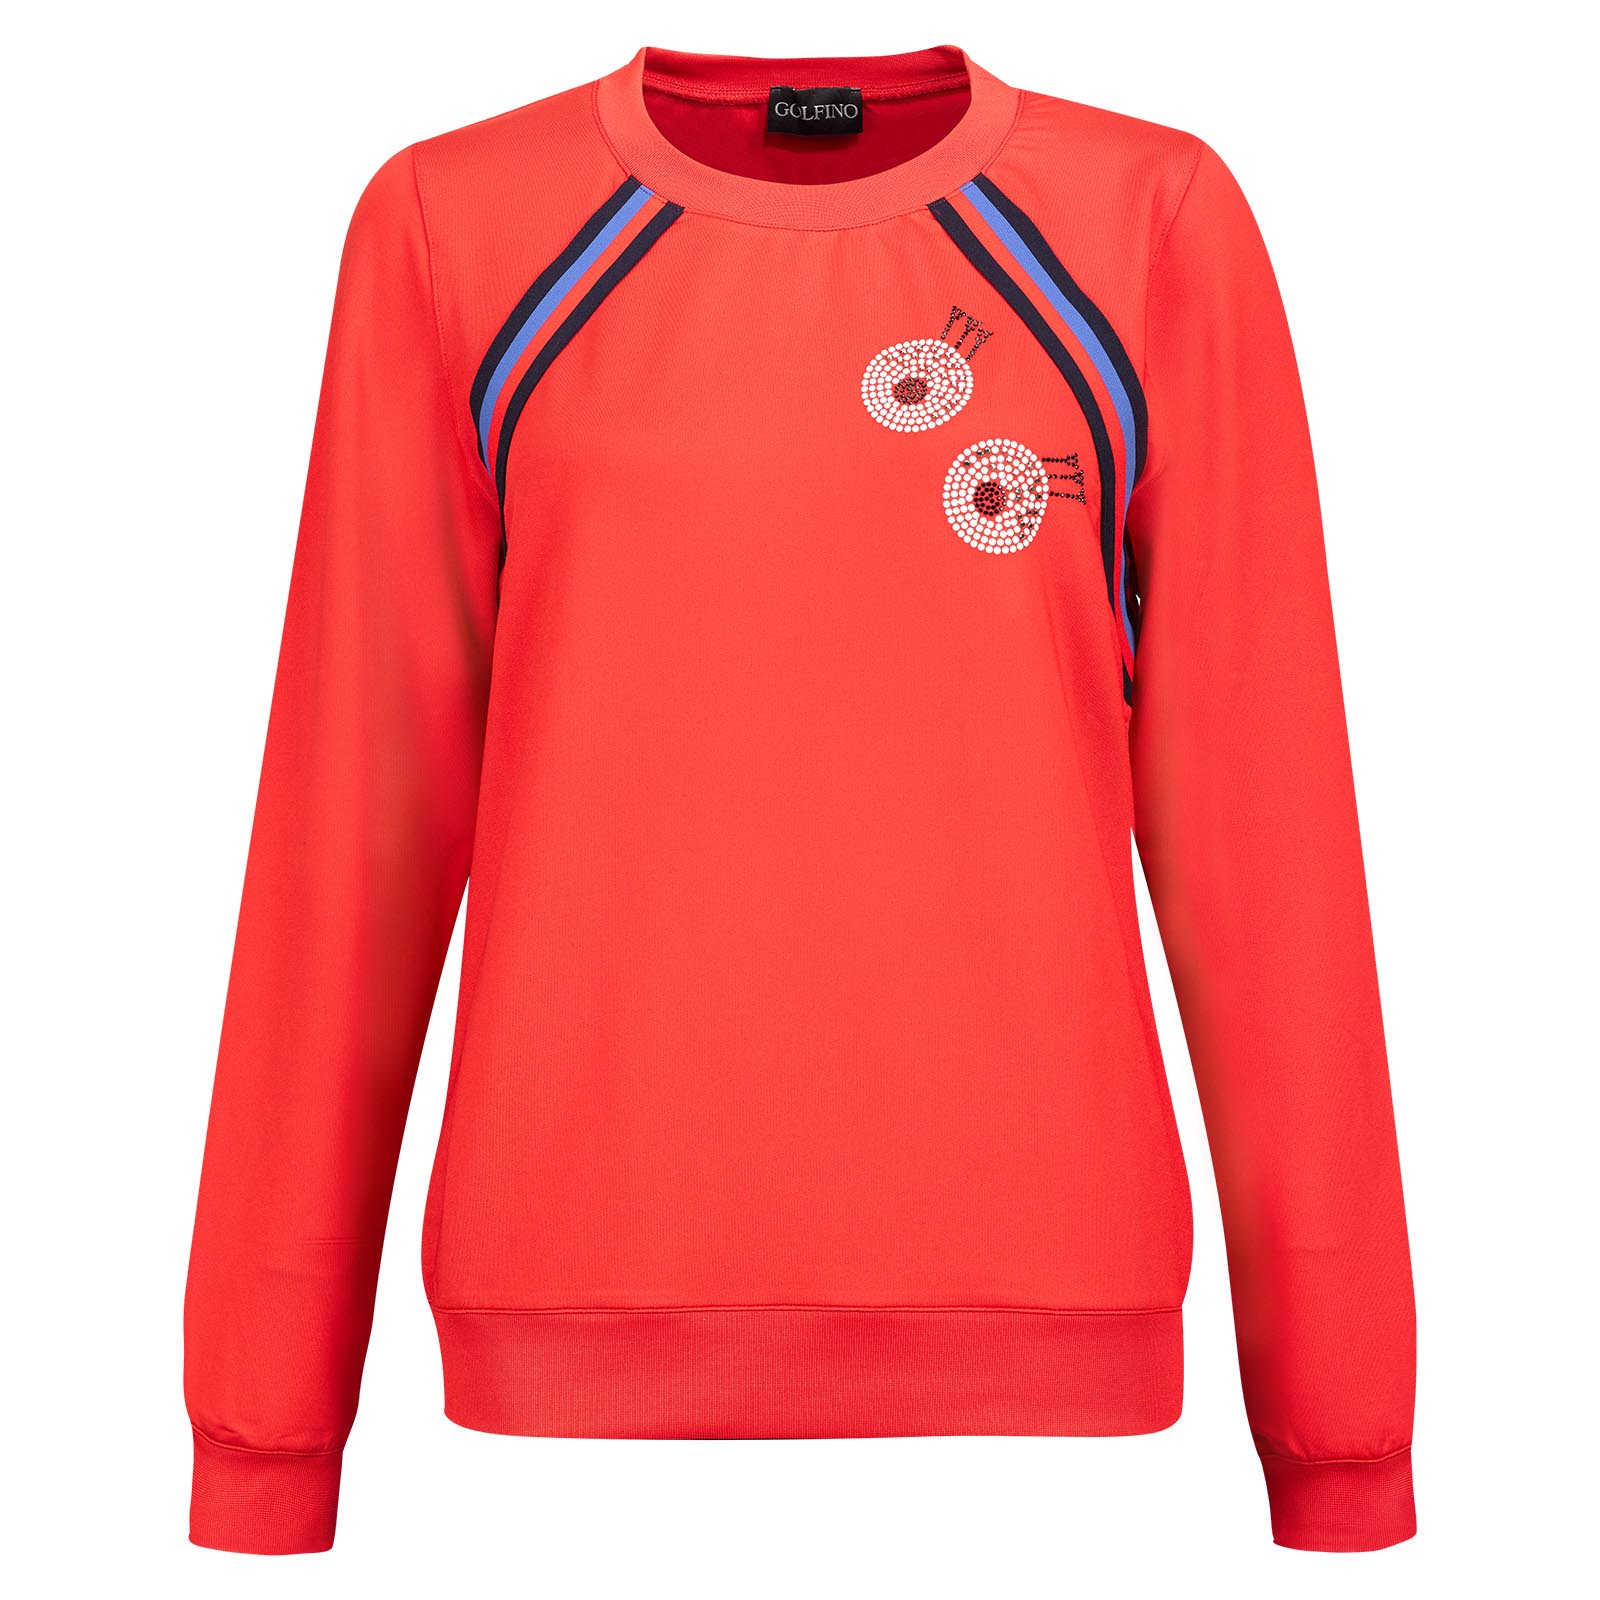 Ladies' retro sport sweater with stretch function and stylish rhinestone